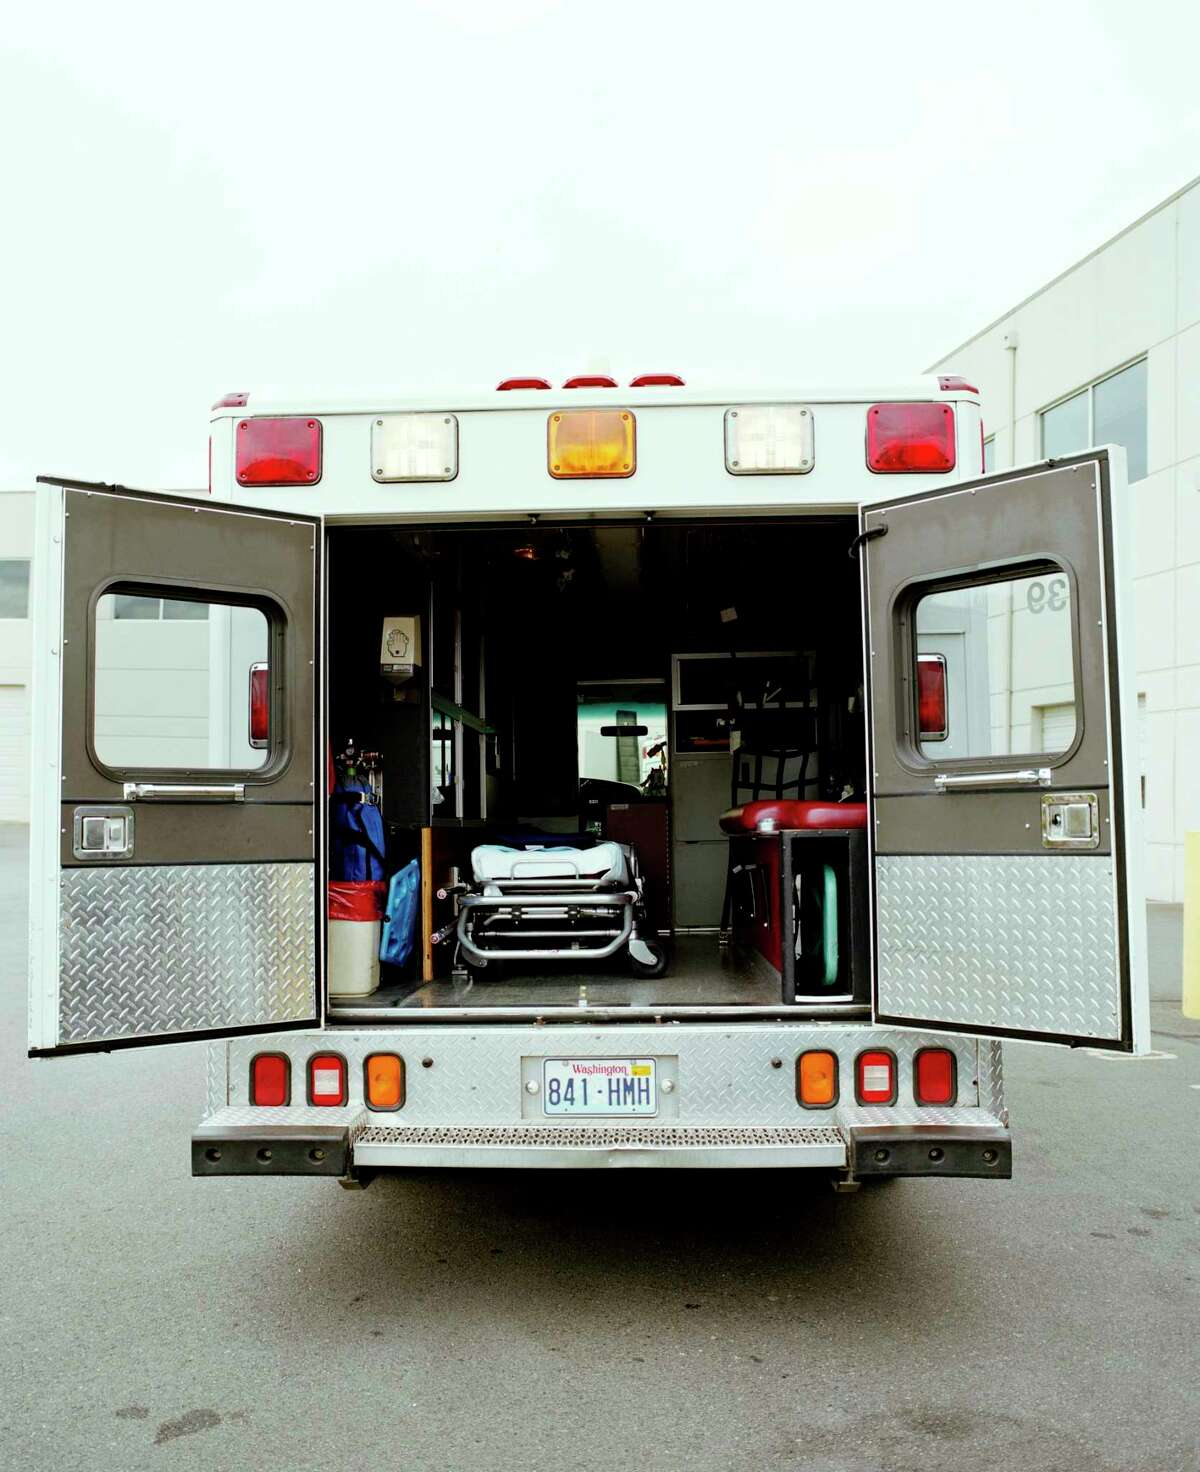 Mobile Medical Response had 186 calls for ambulance services last month with most of those taking place in Manistee Township and Filer Township. (Courtesy photo/Getty Images)